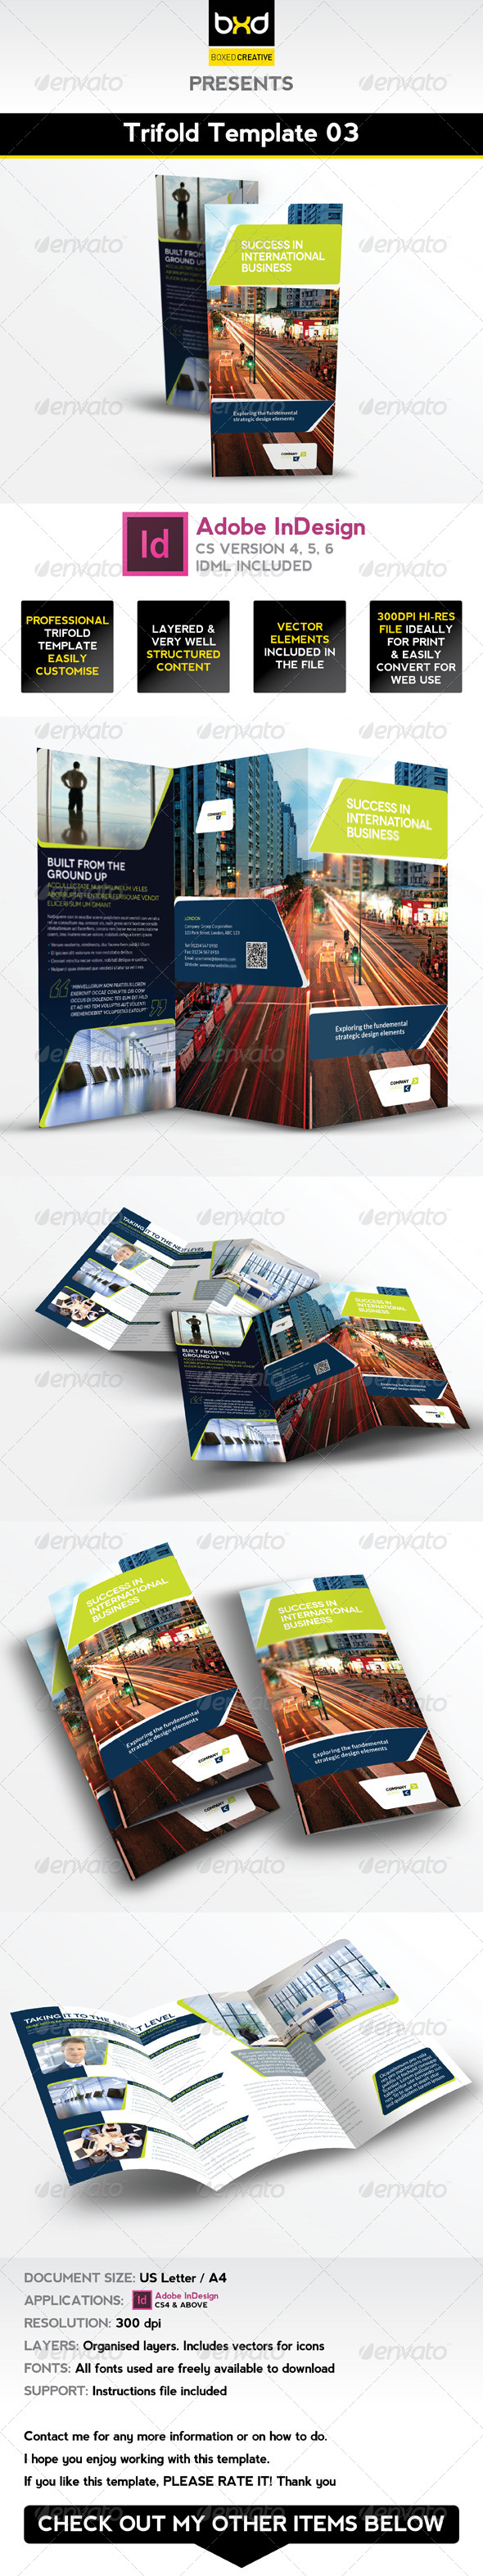 Trifold Brochure Template 03 - InDesign Layout - Corporate Brochures